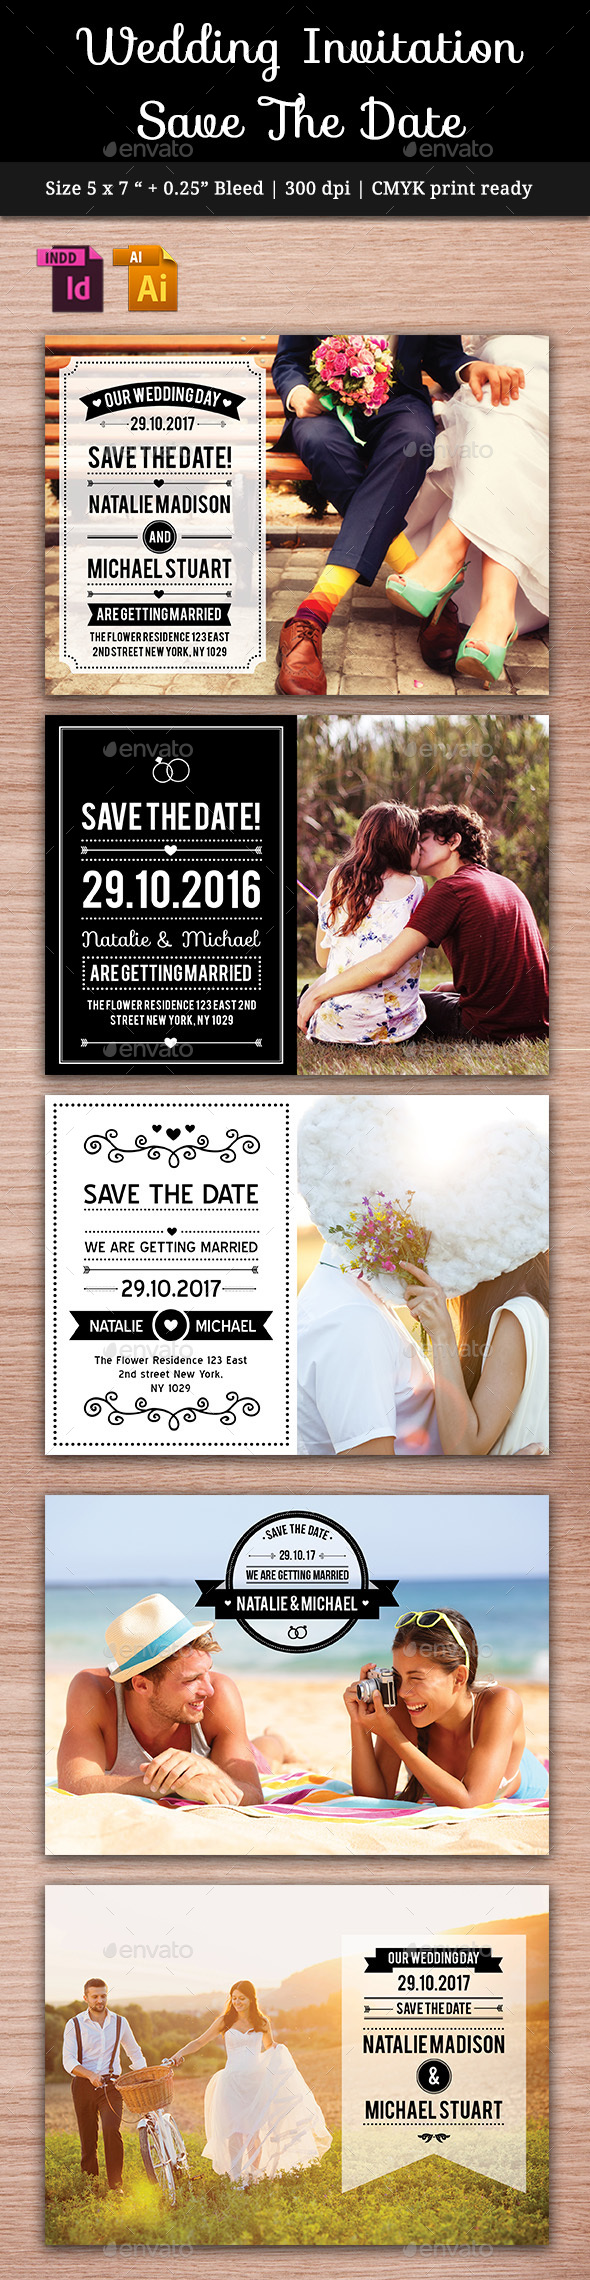 Wedding Save The Date Vol. 2 - Cards & Invites Print Templates